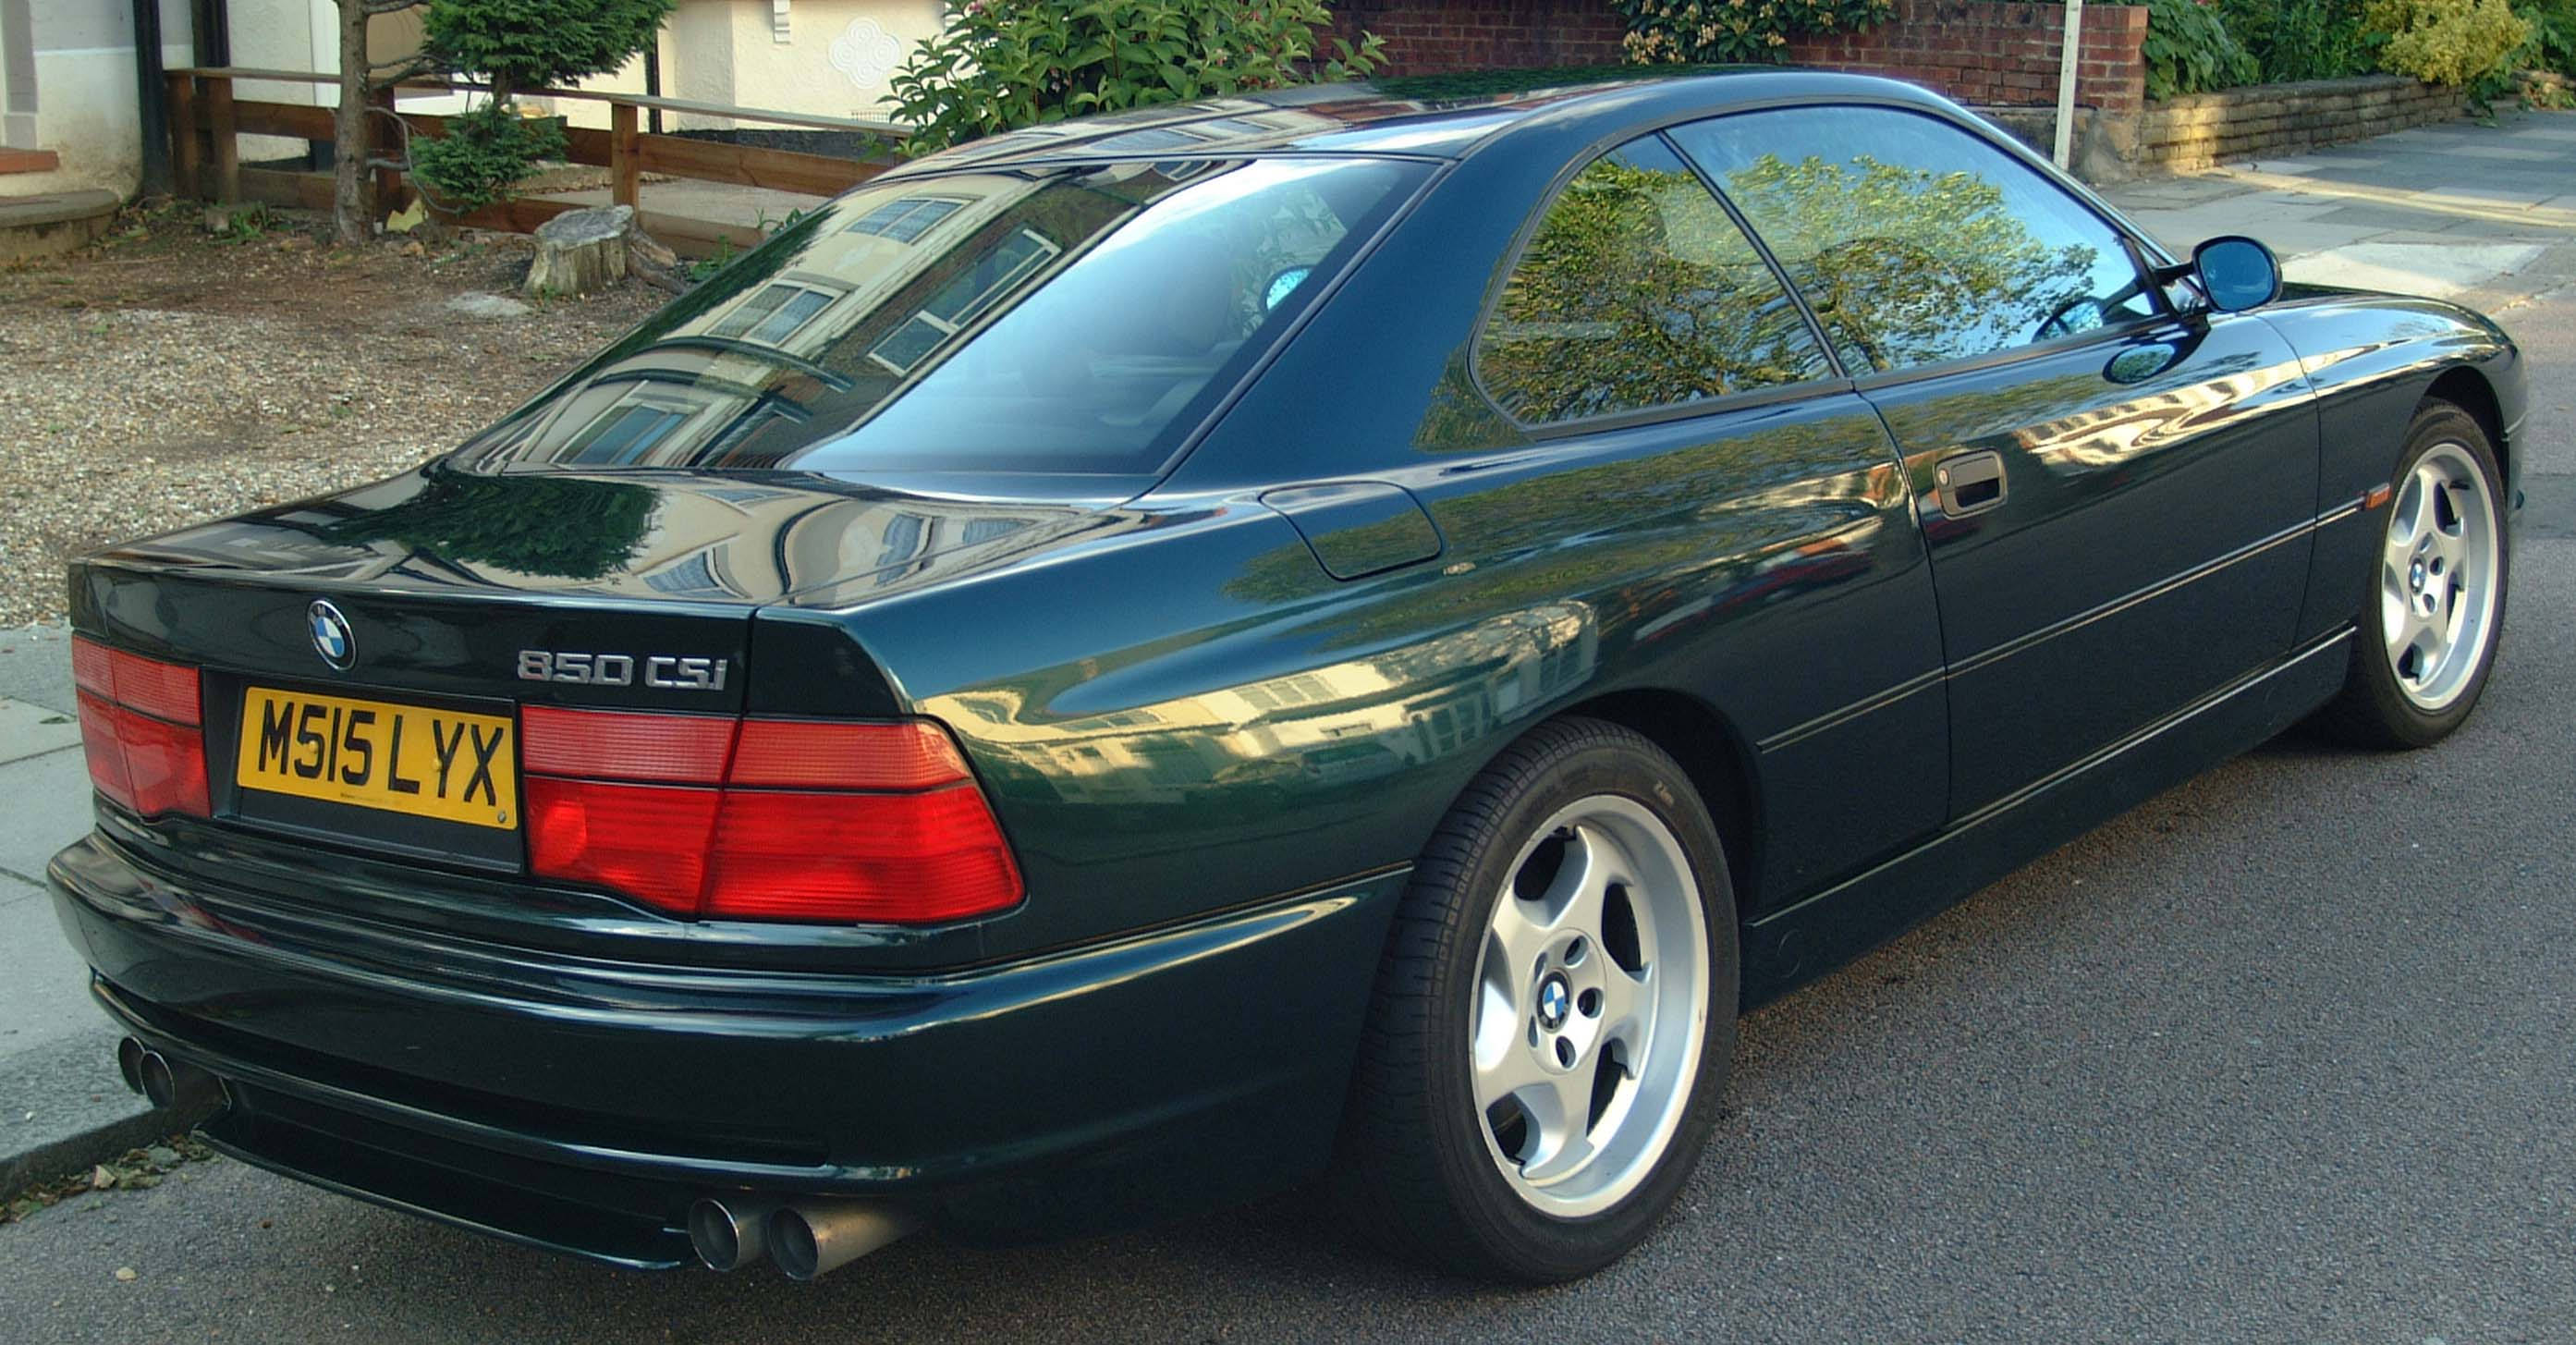 BMW: 840i or M3 (e46)? : General BMW Help/Advice • BMWLand